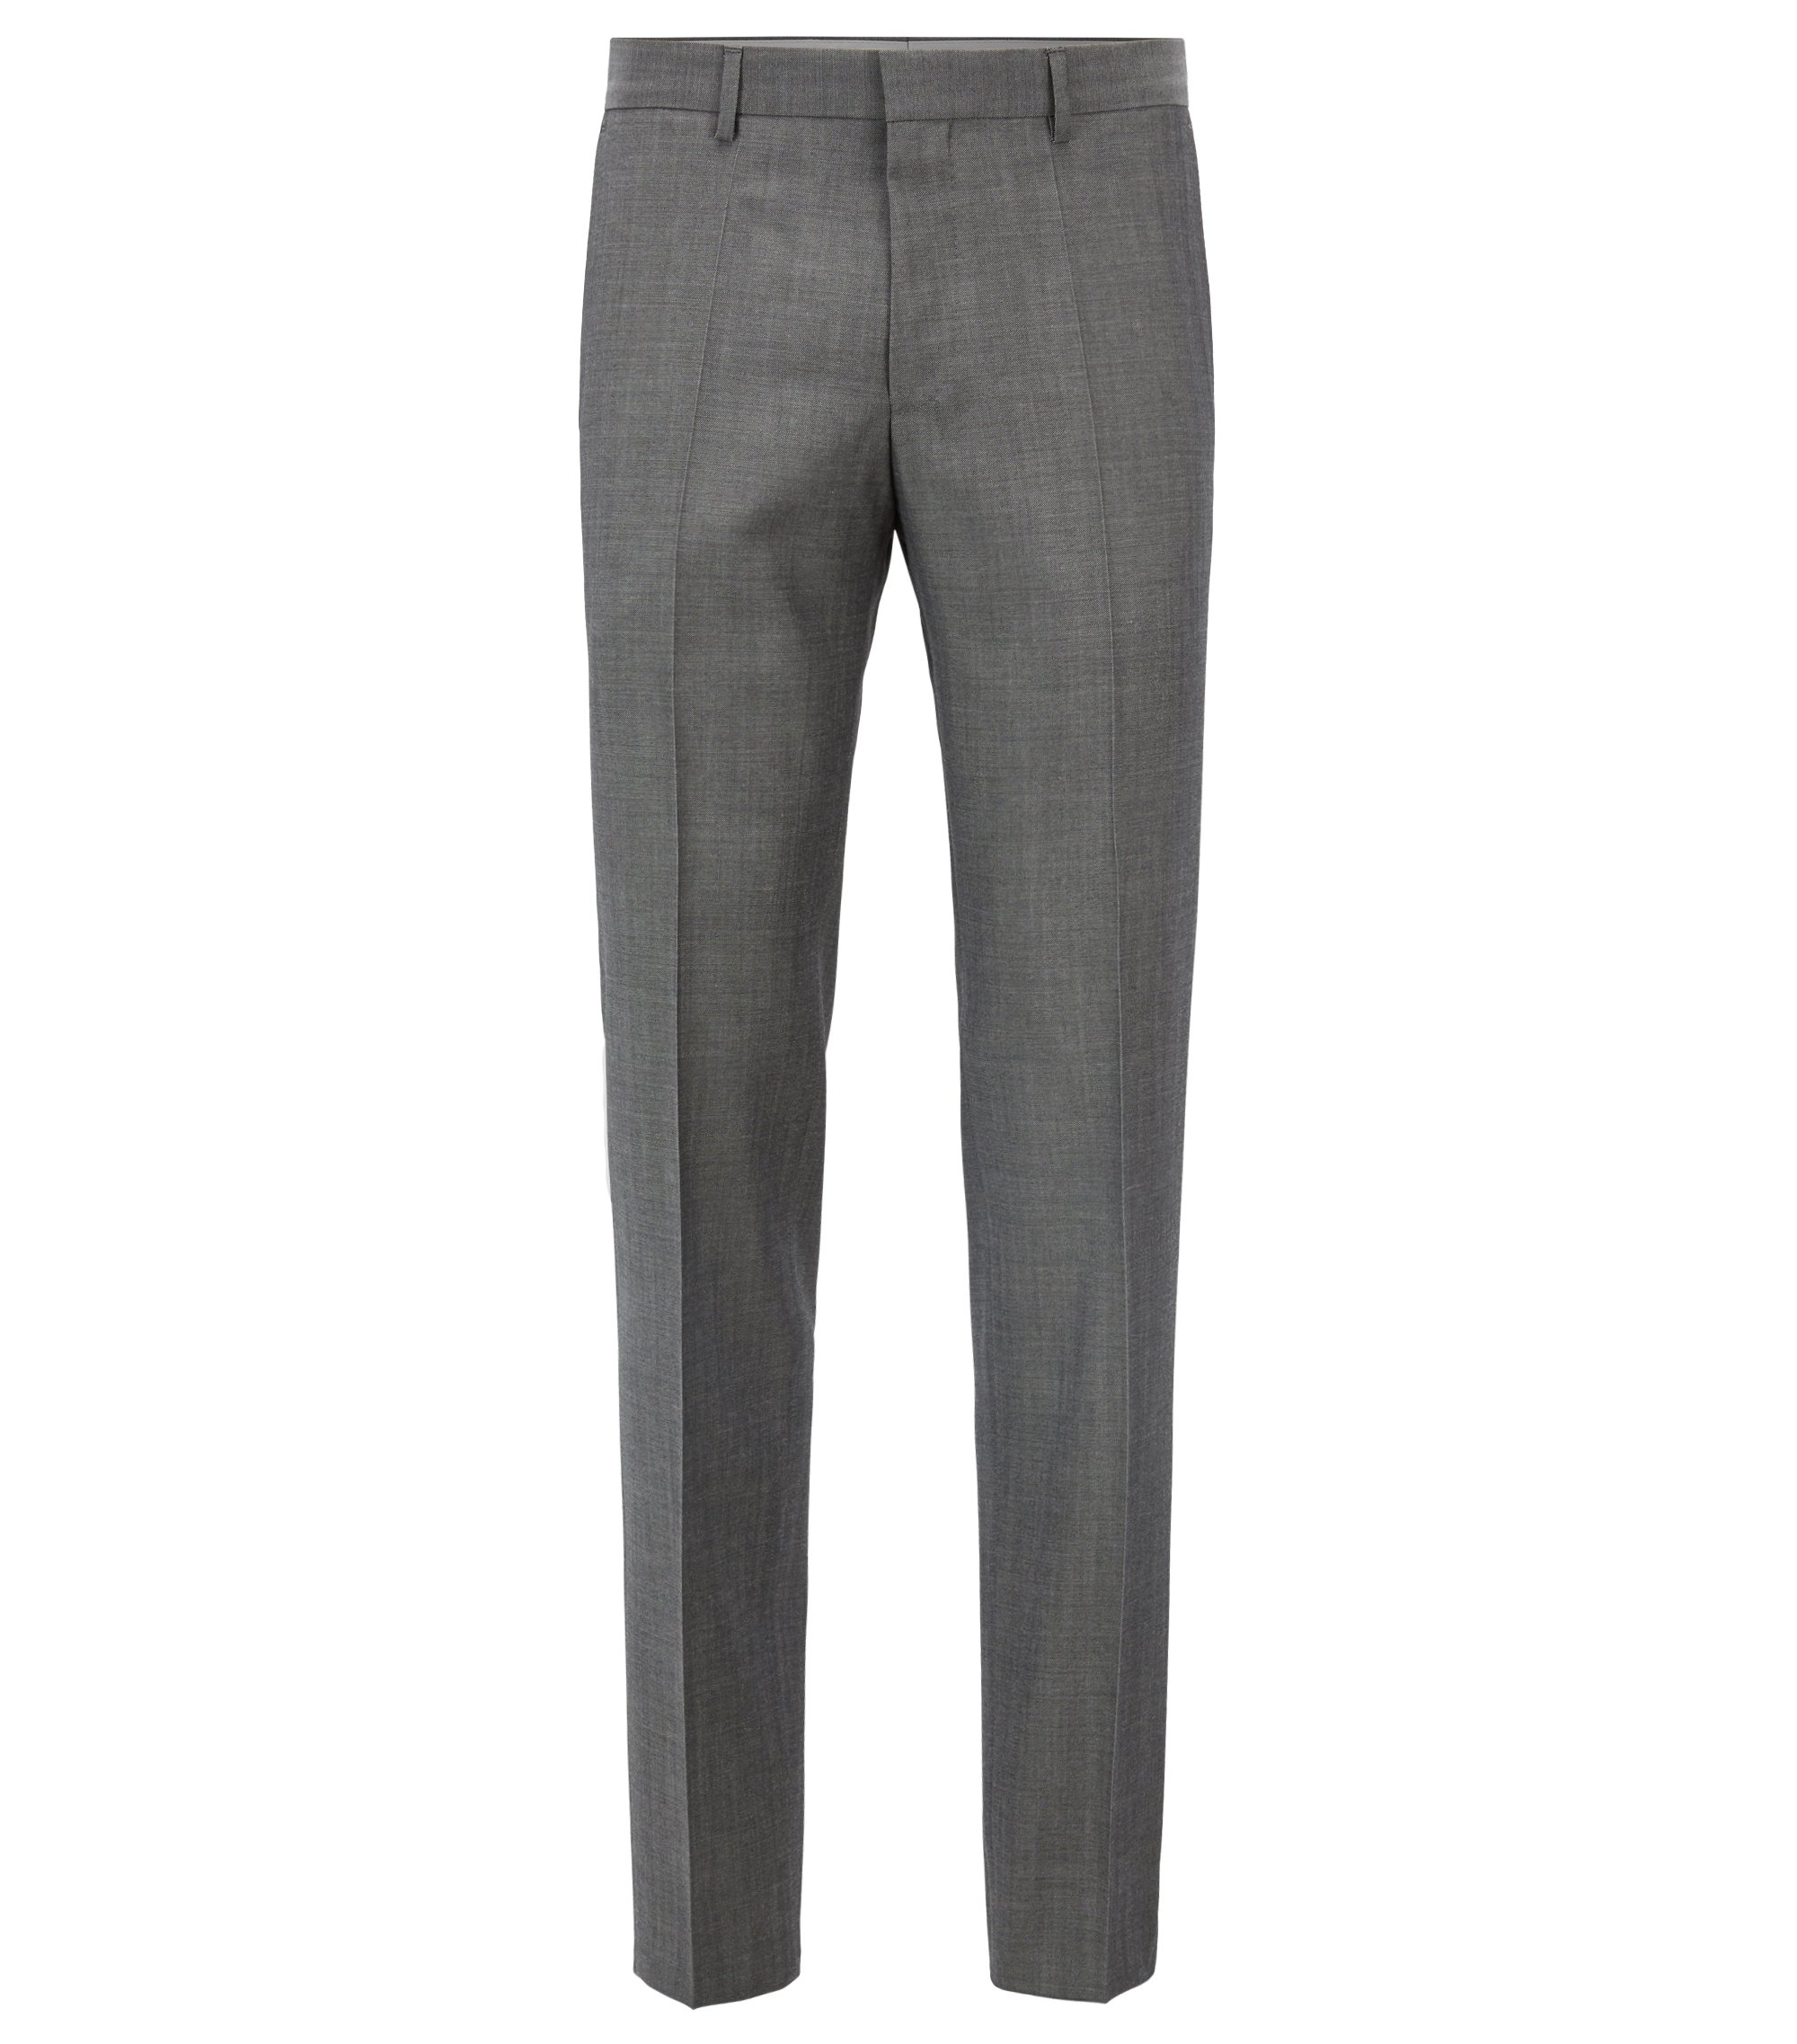 Slim-fit pants in mohair-look virgin wool, Grey